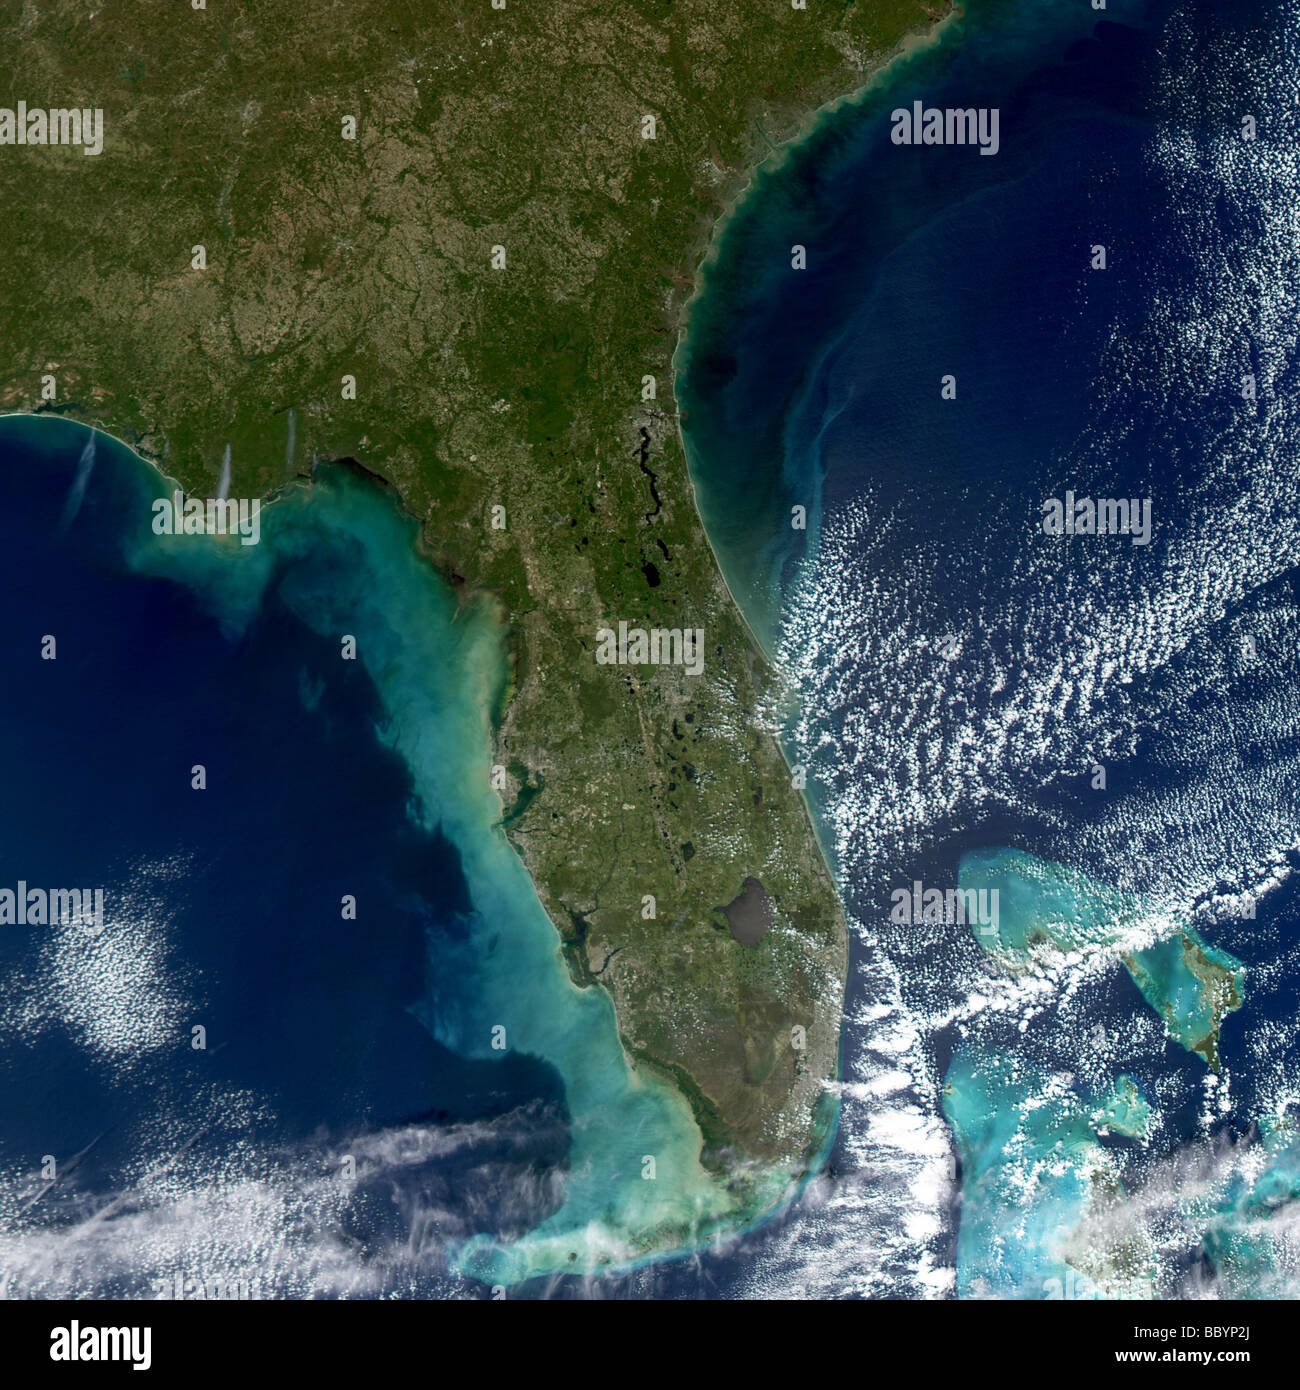 Satellite View Of The Gulf Coast Stock Photos & Satellite ... on